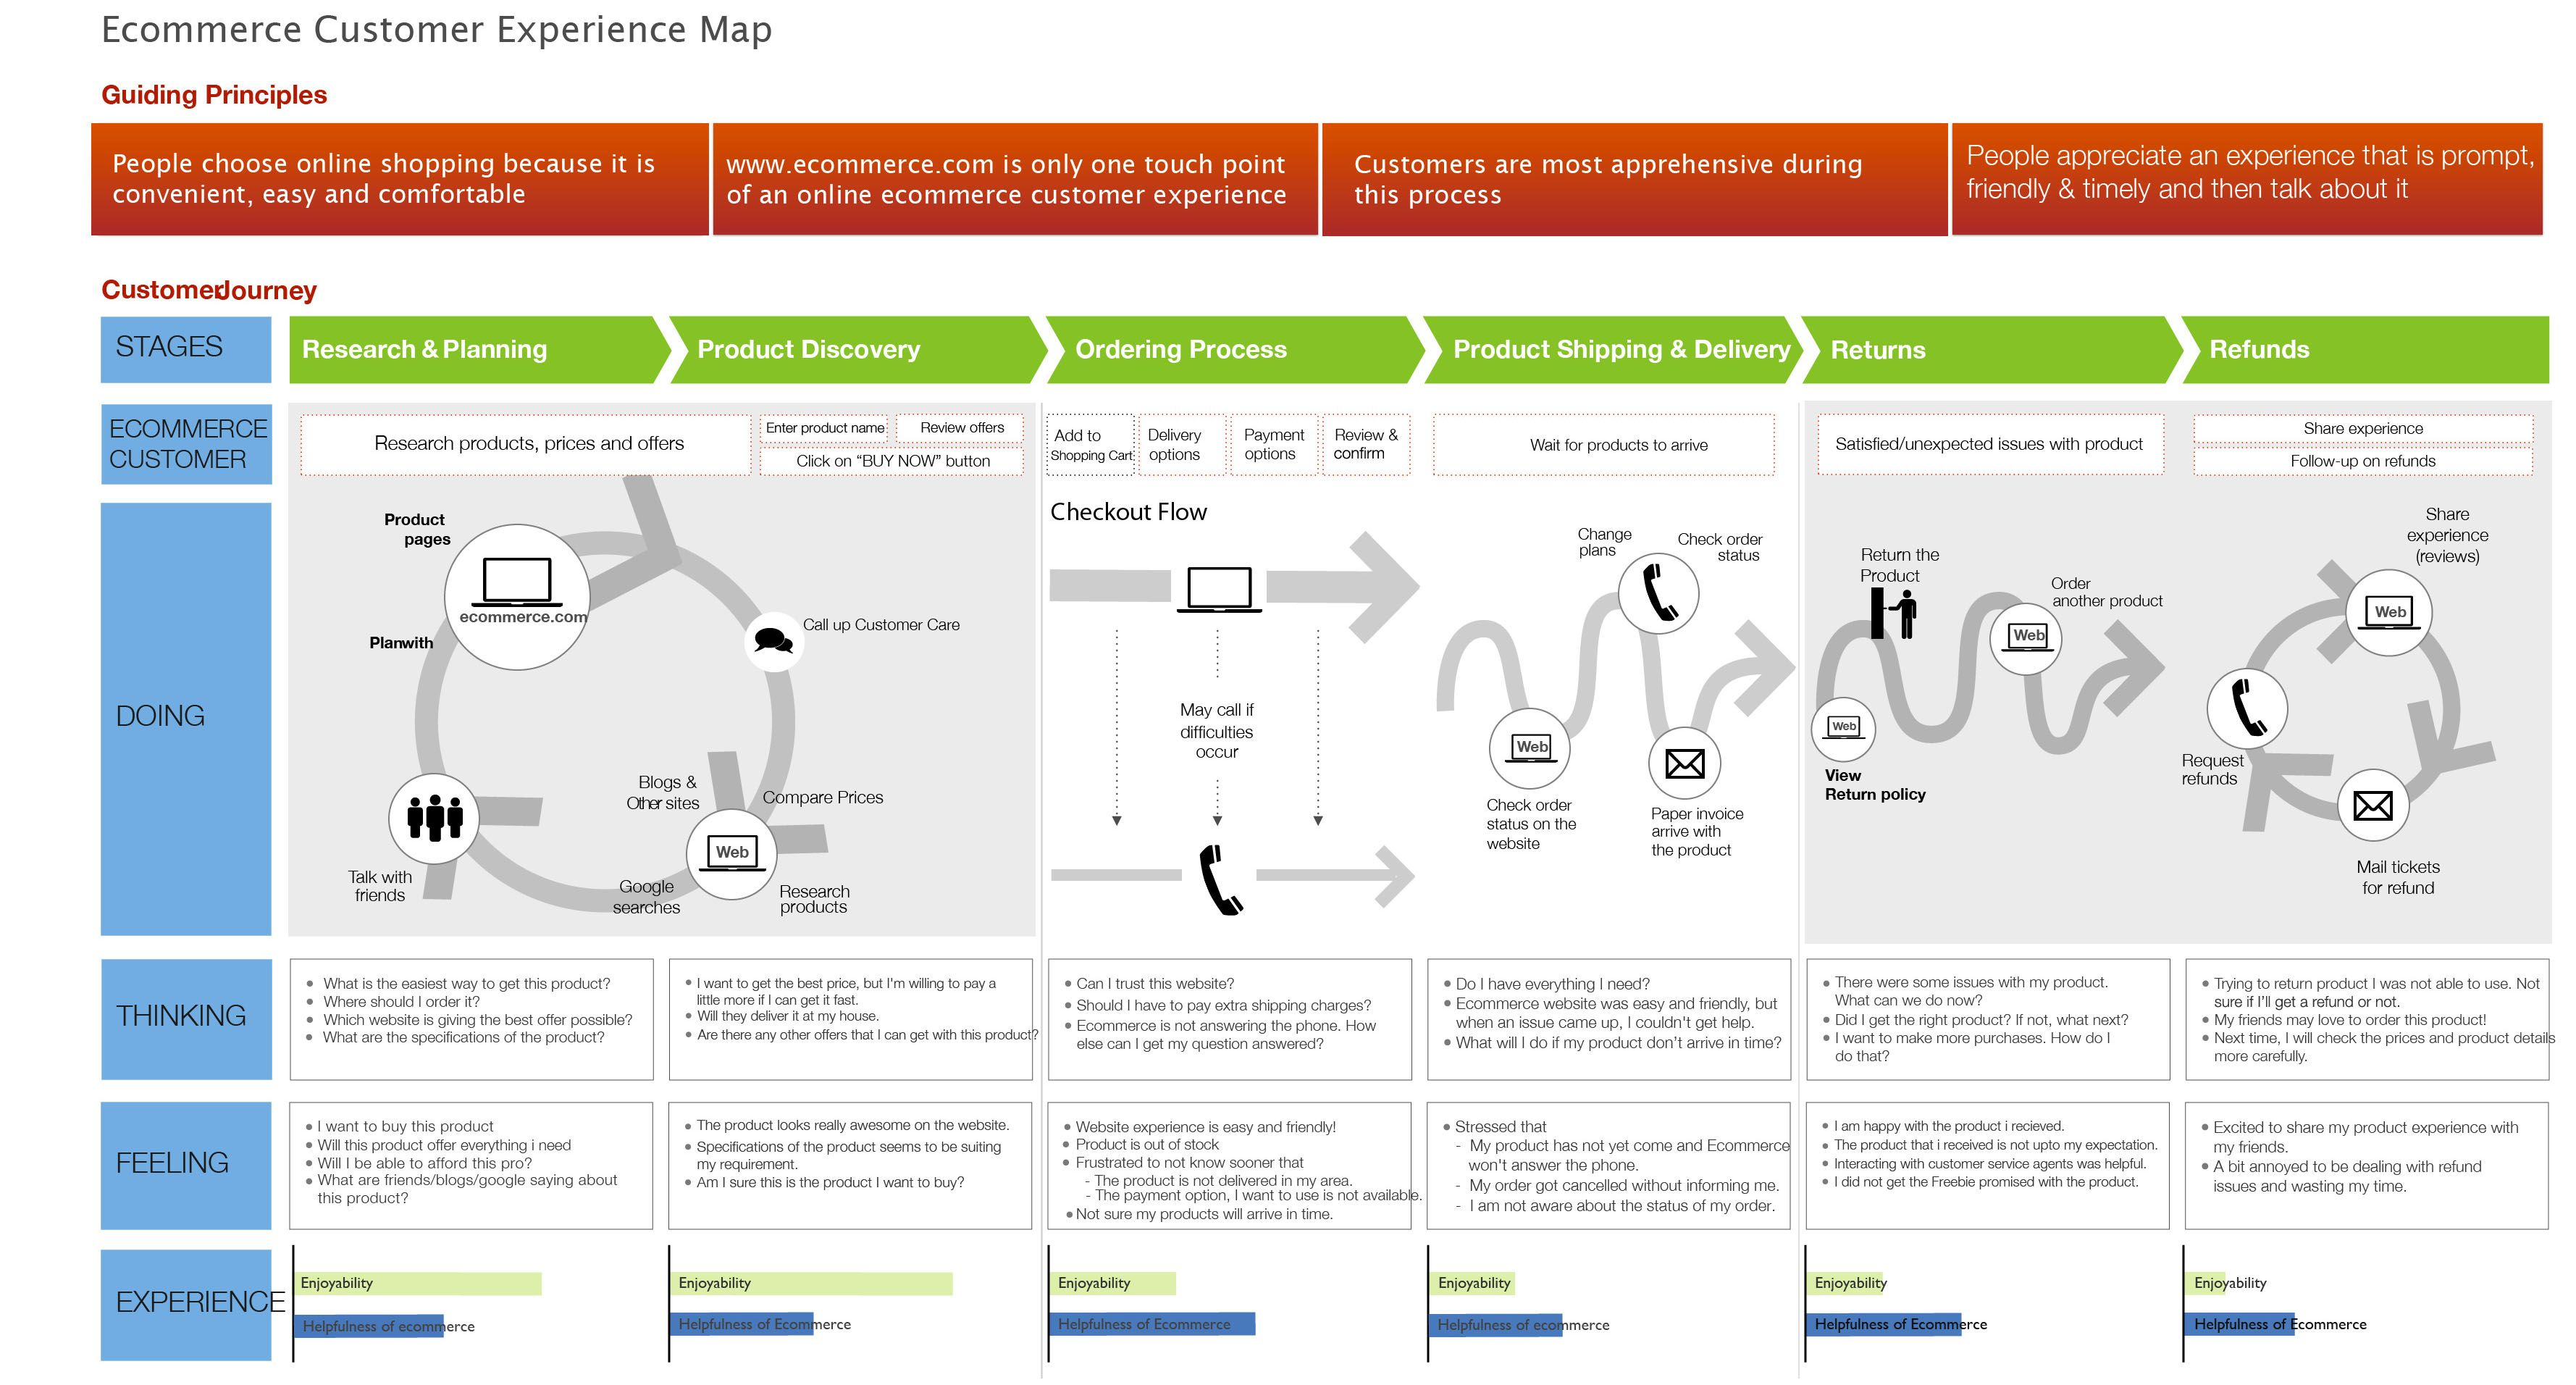 Ecommerce Customer Experience Map (User Journey)